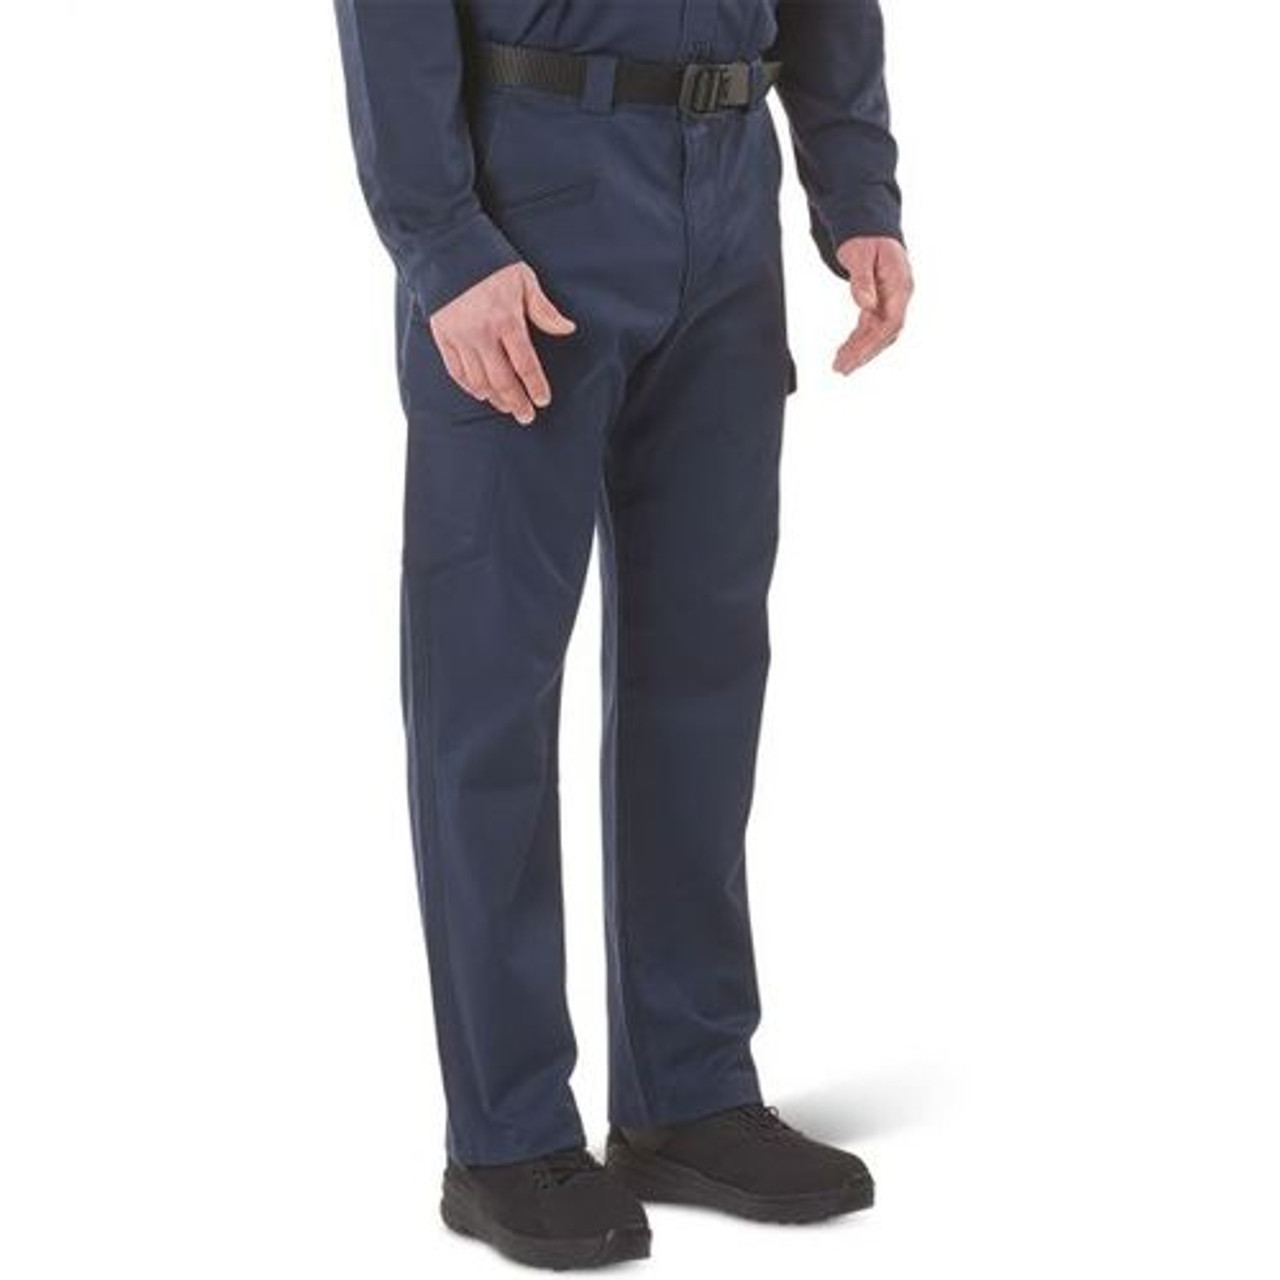 5.11 Tactical 74482 Stryke EMS Men's Uniform Cargo Pants, Relaxed Fit, Adjustable Waist, available in Black or Navy